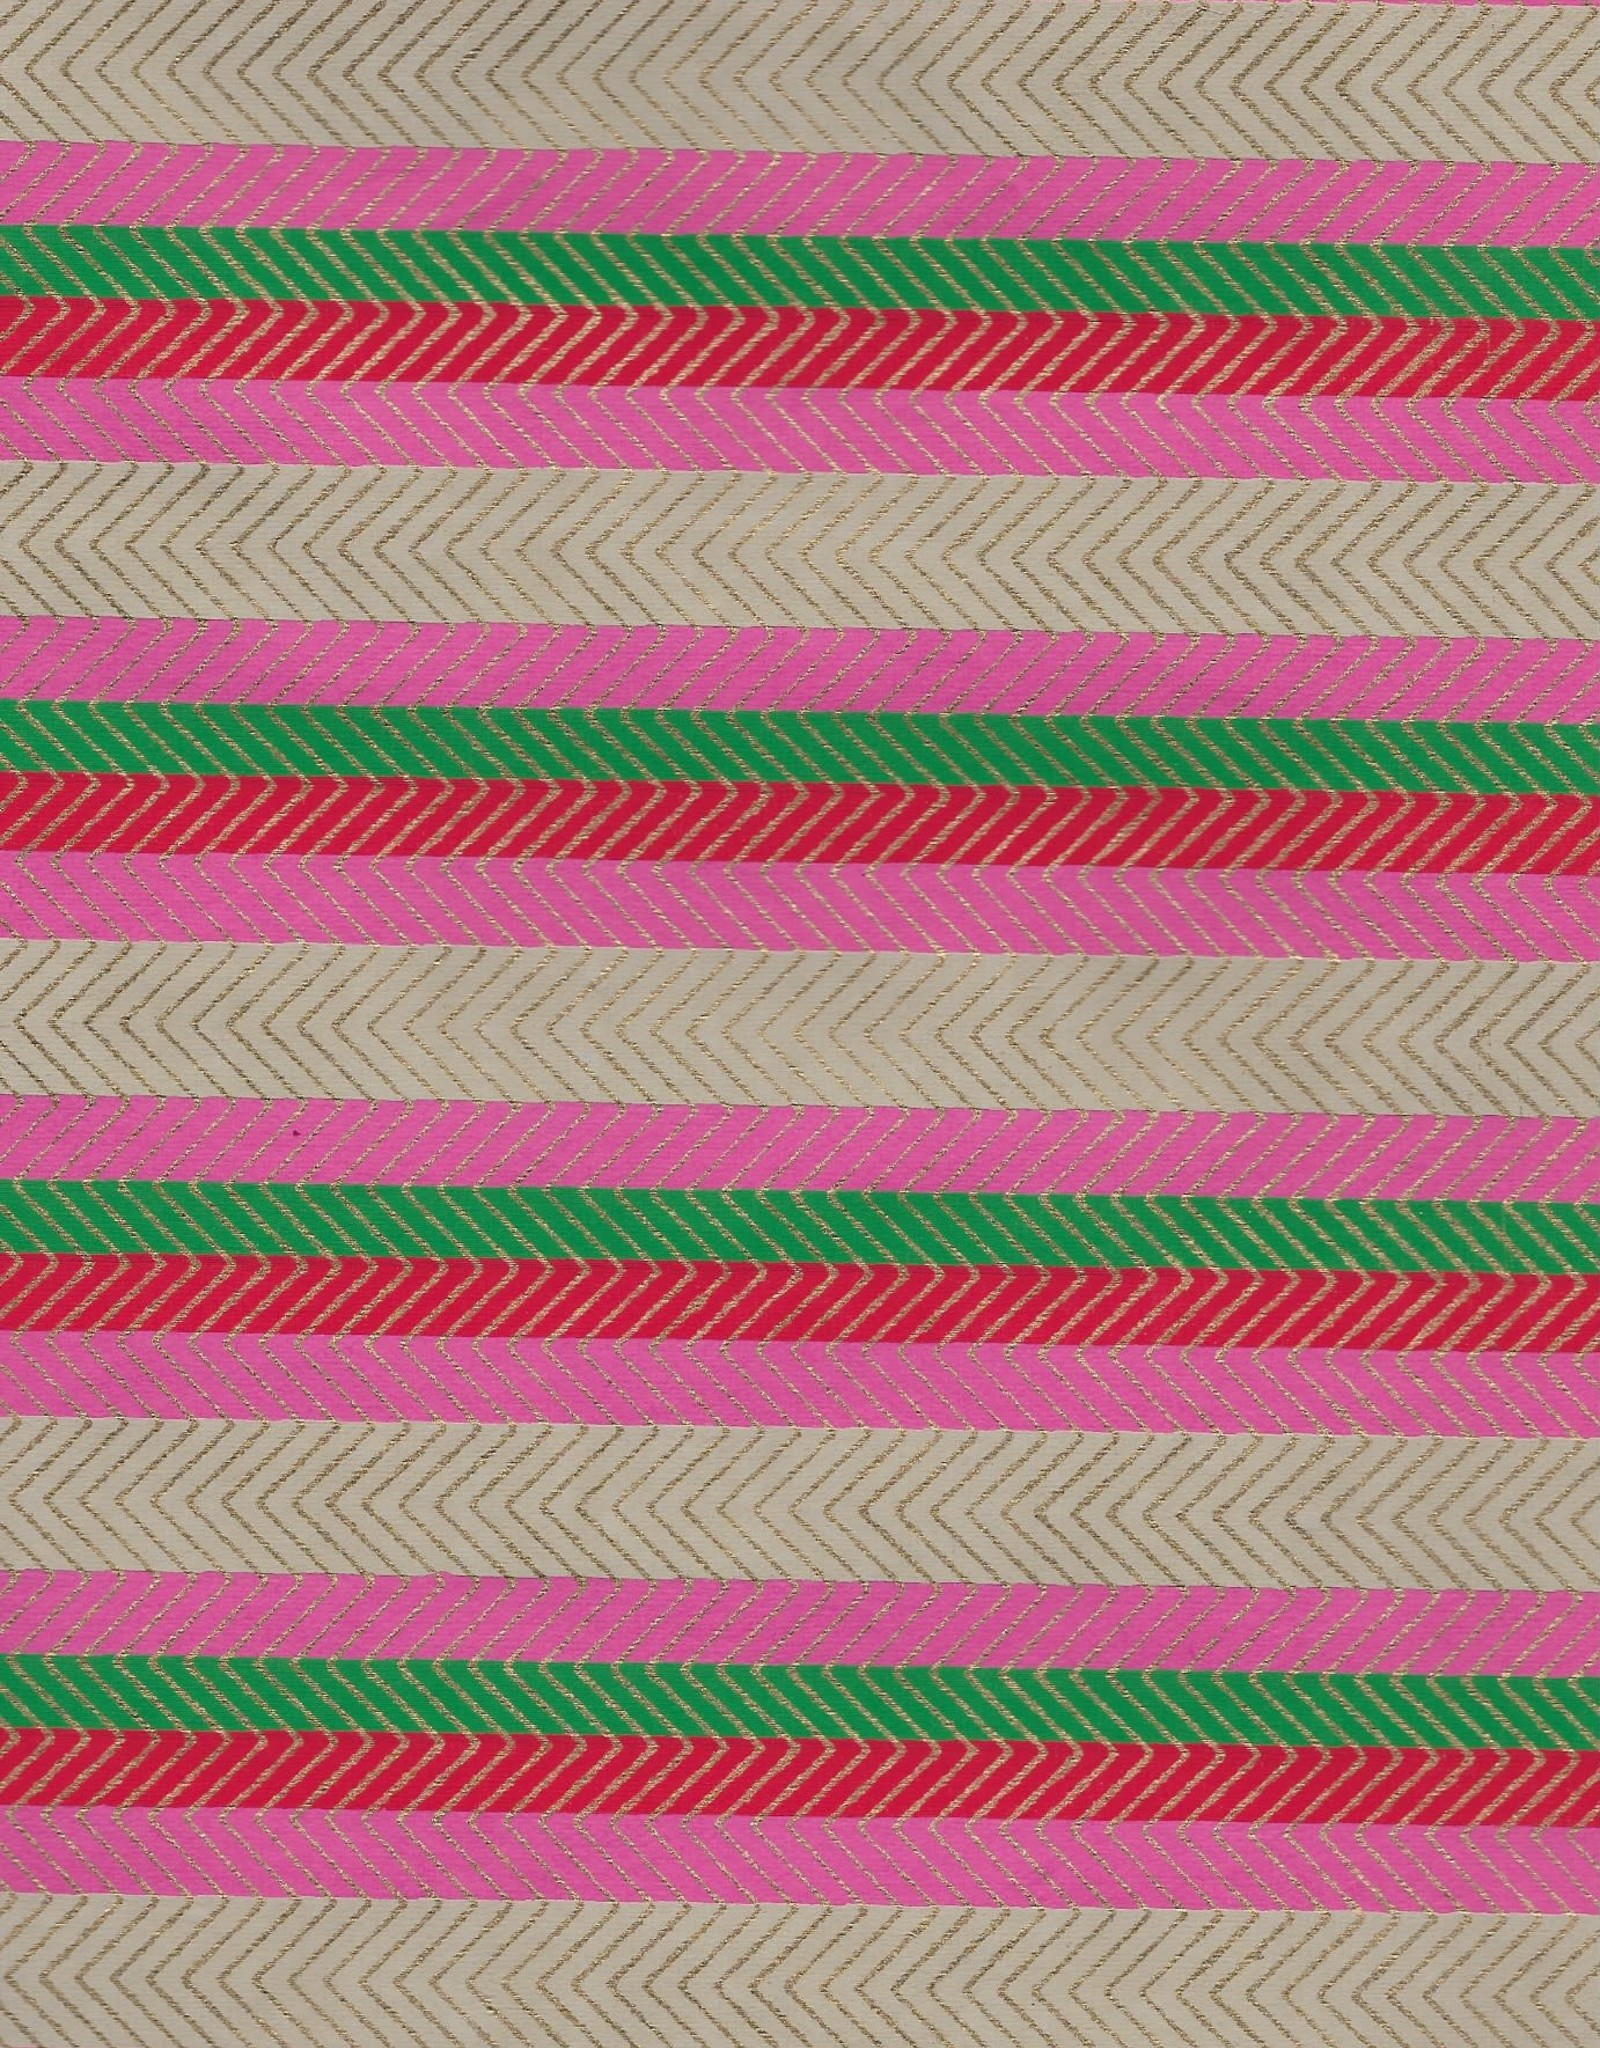 Stripes with Zig Zag Gold Lines